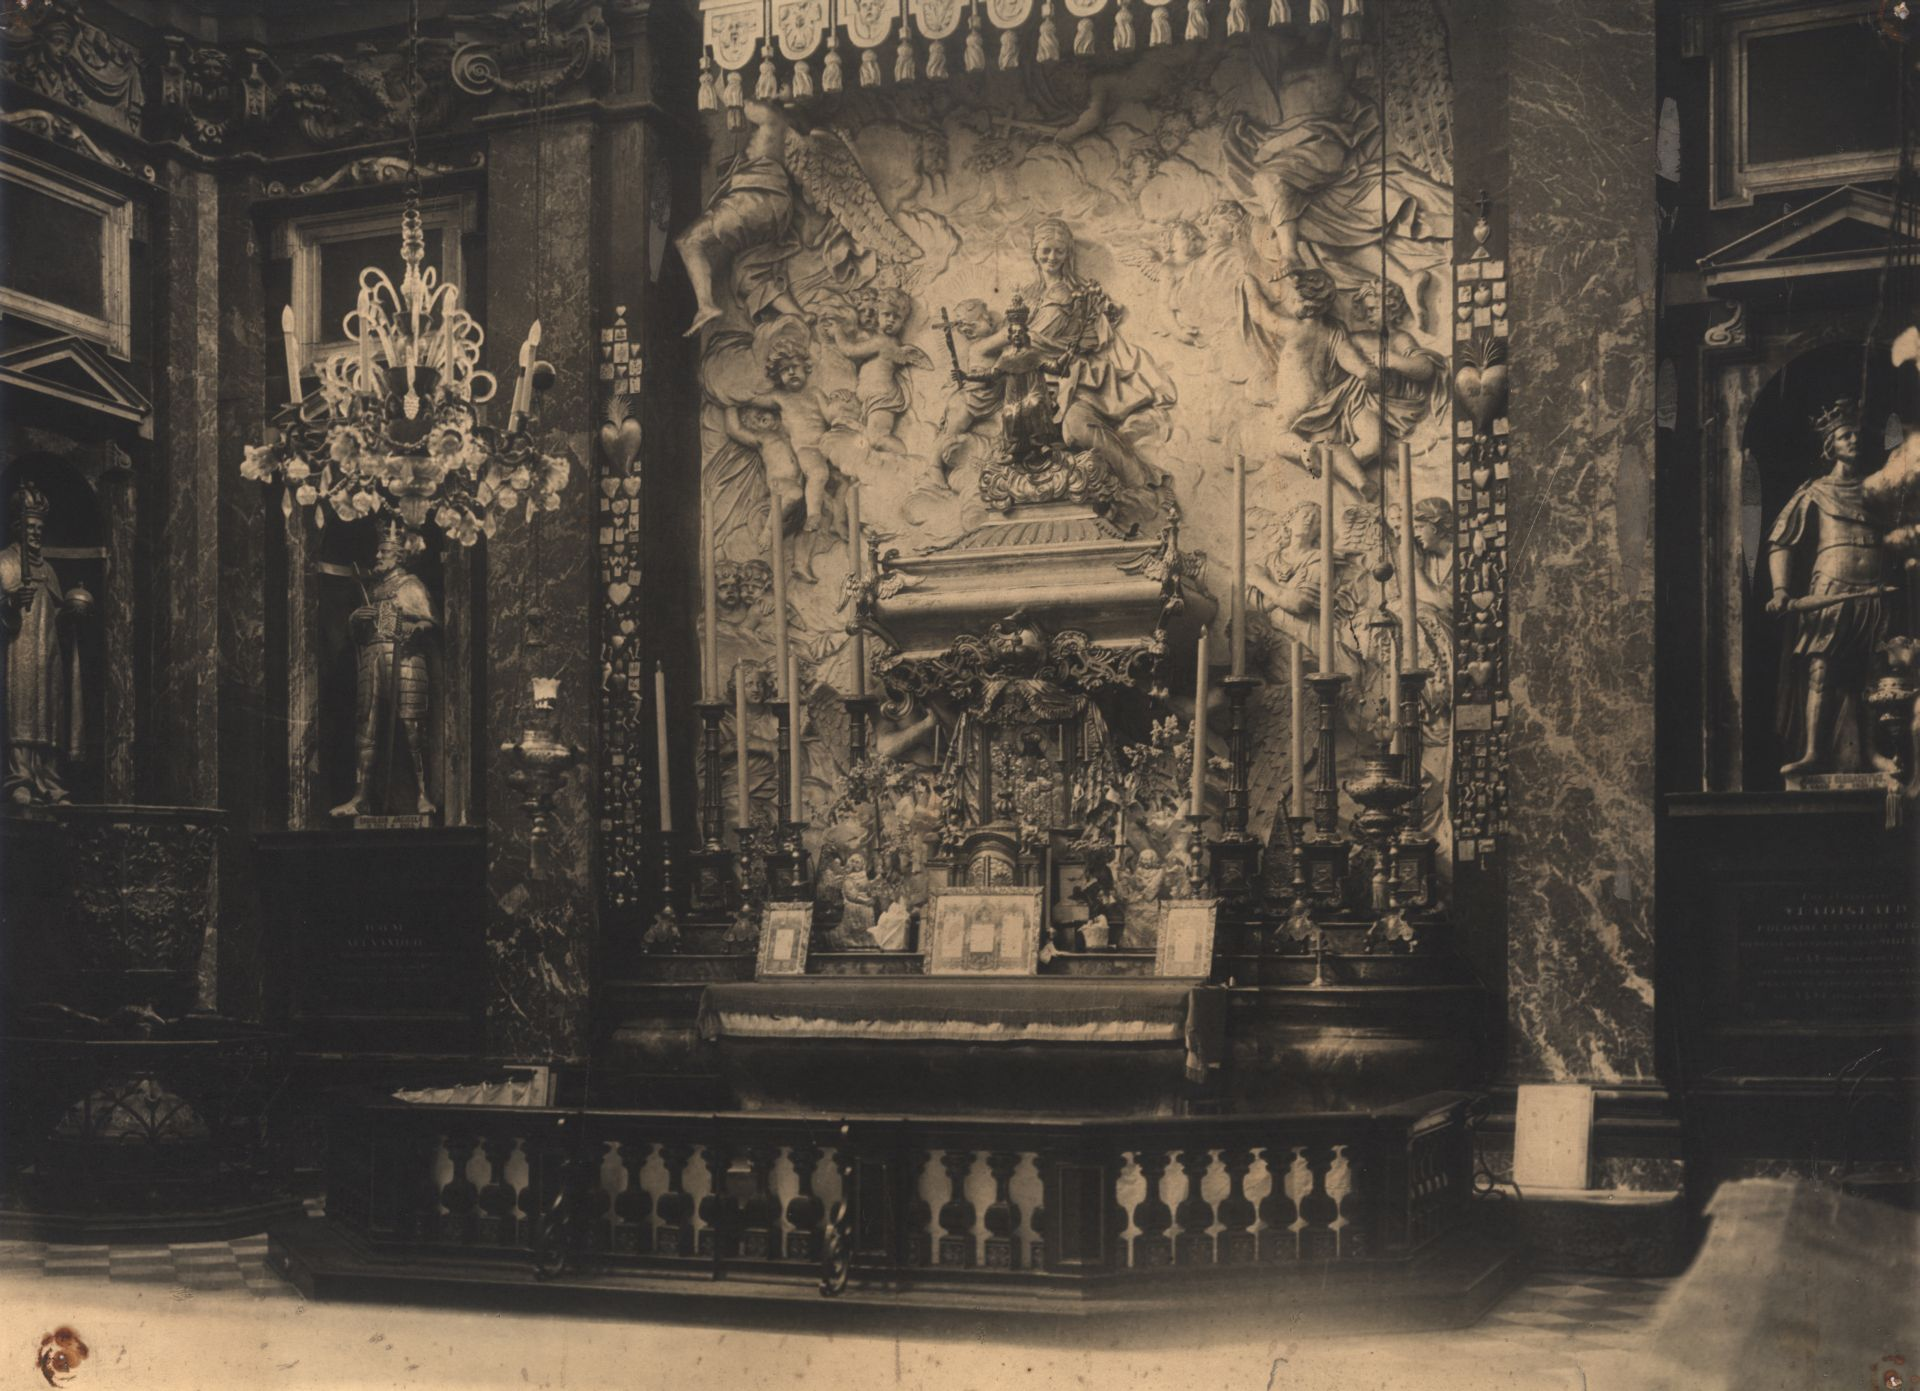 Chandelier at the Chapel of Saint Casimir of the Cathedral Basilica of Vilnius. Photo by Jan Bułhak, 1931, in: Lietuvos dailės muziejus, inv. Nr. Fi-106